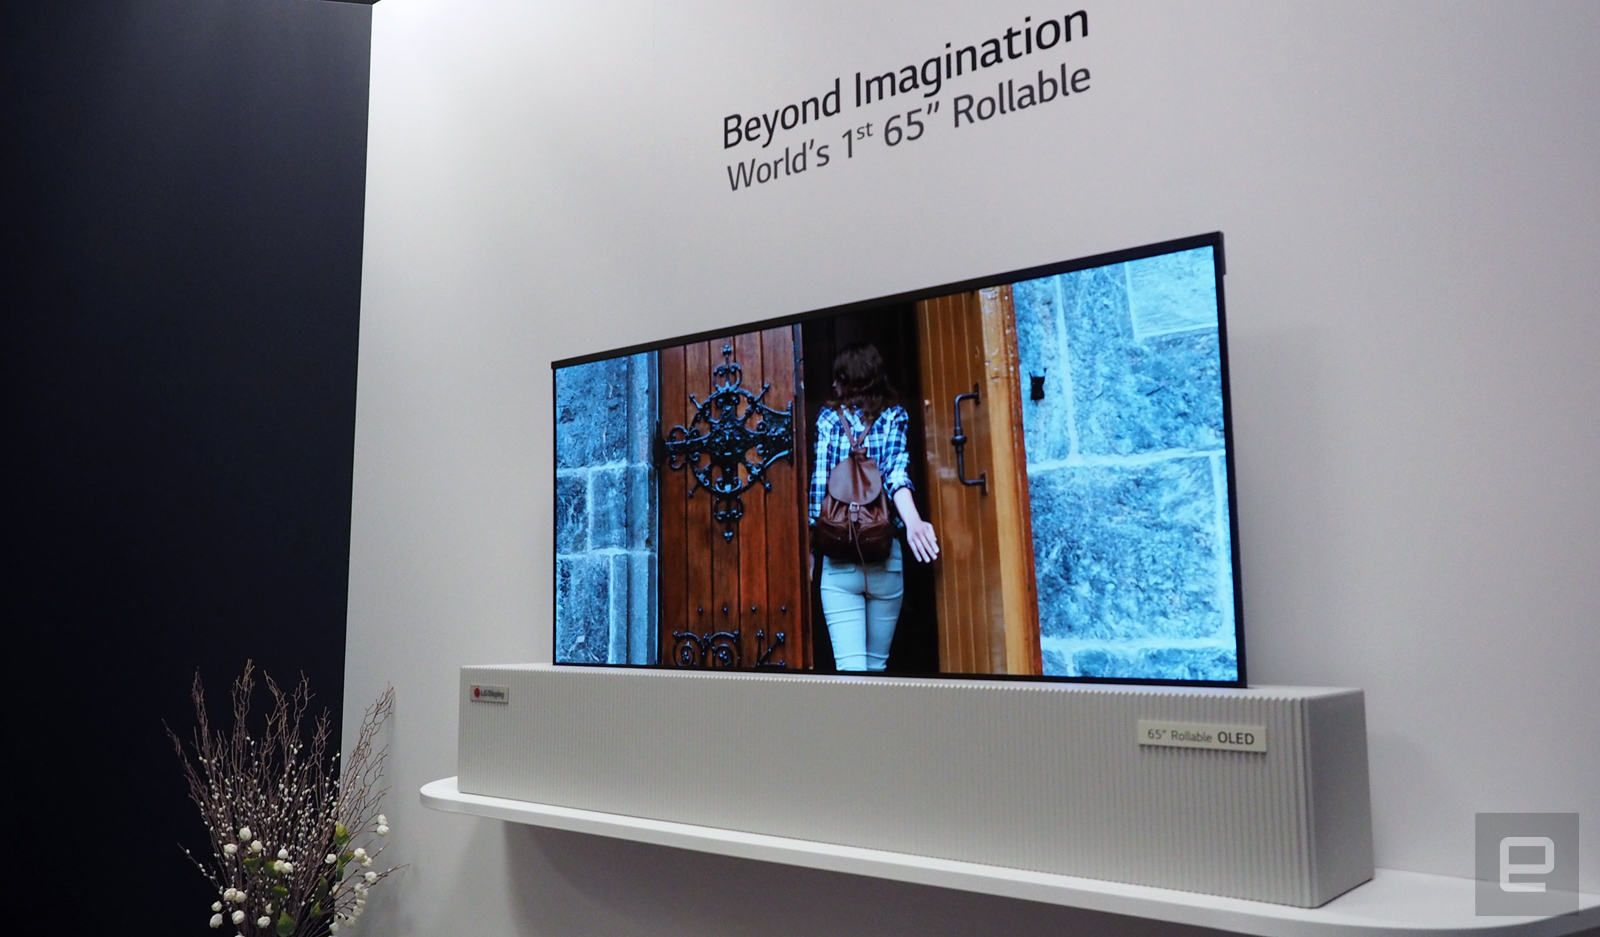 LG Display's giant rollable OLED TV is indistinguishable